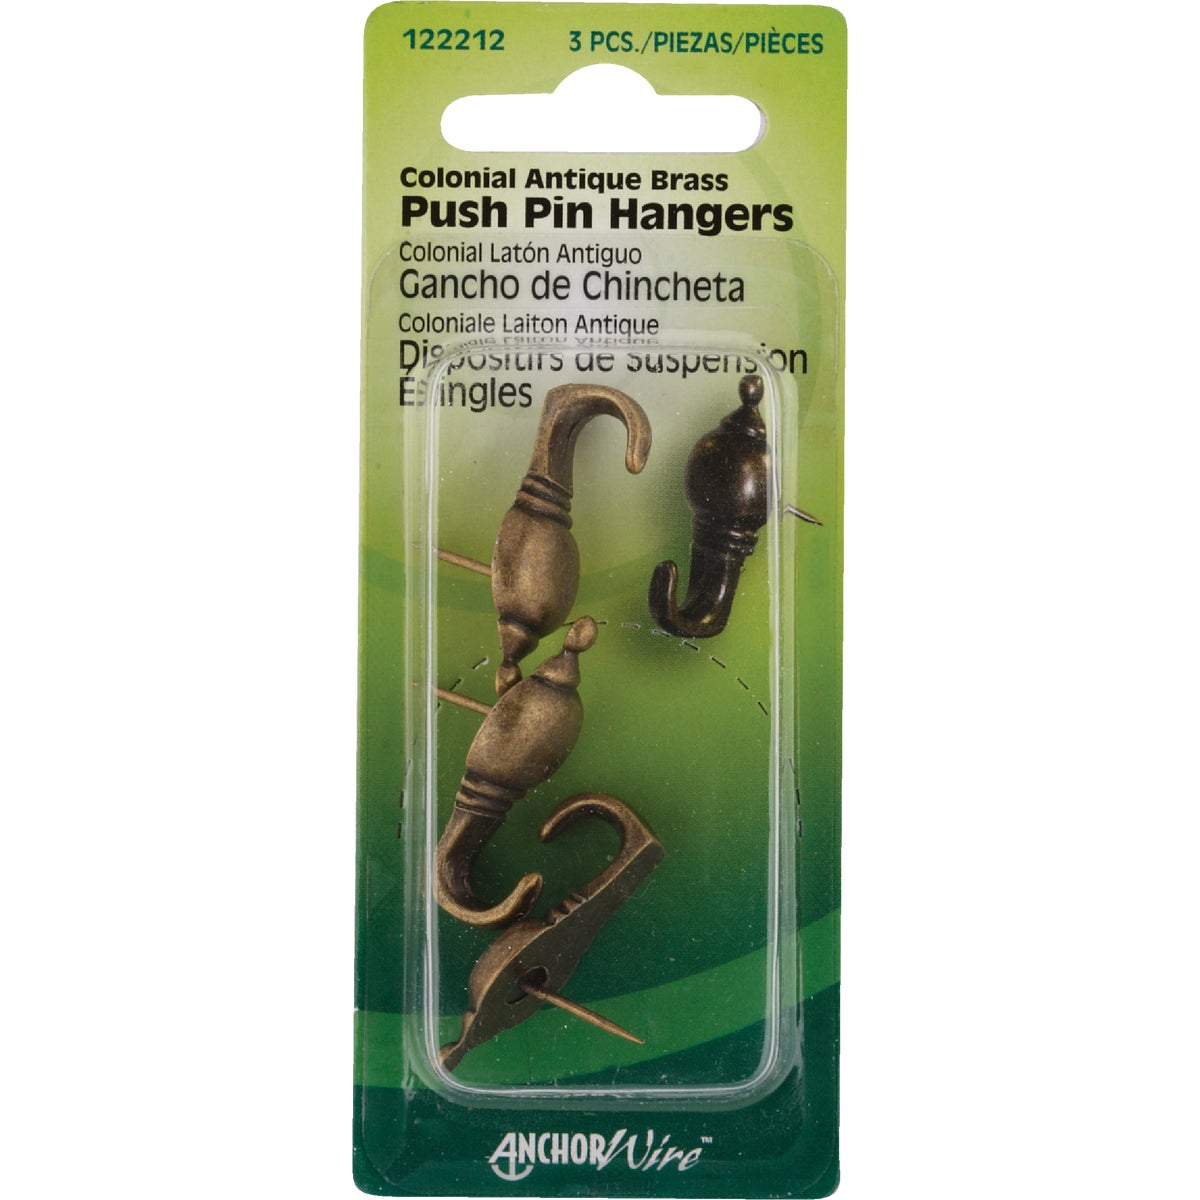 AB COLONIAL HANGER - 122212 by Hillman Fastener